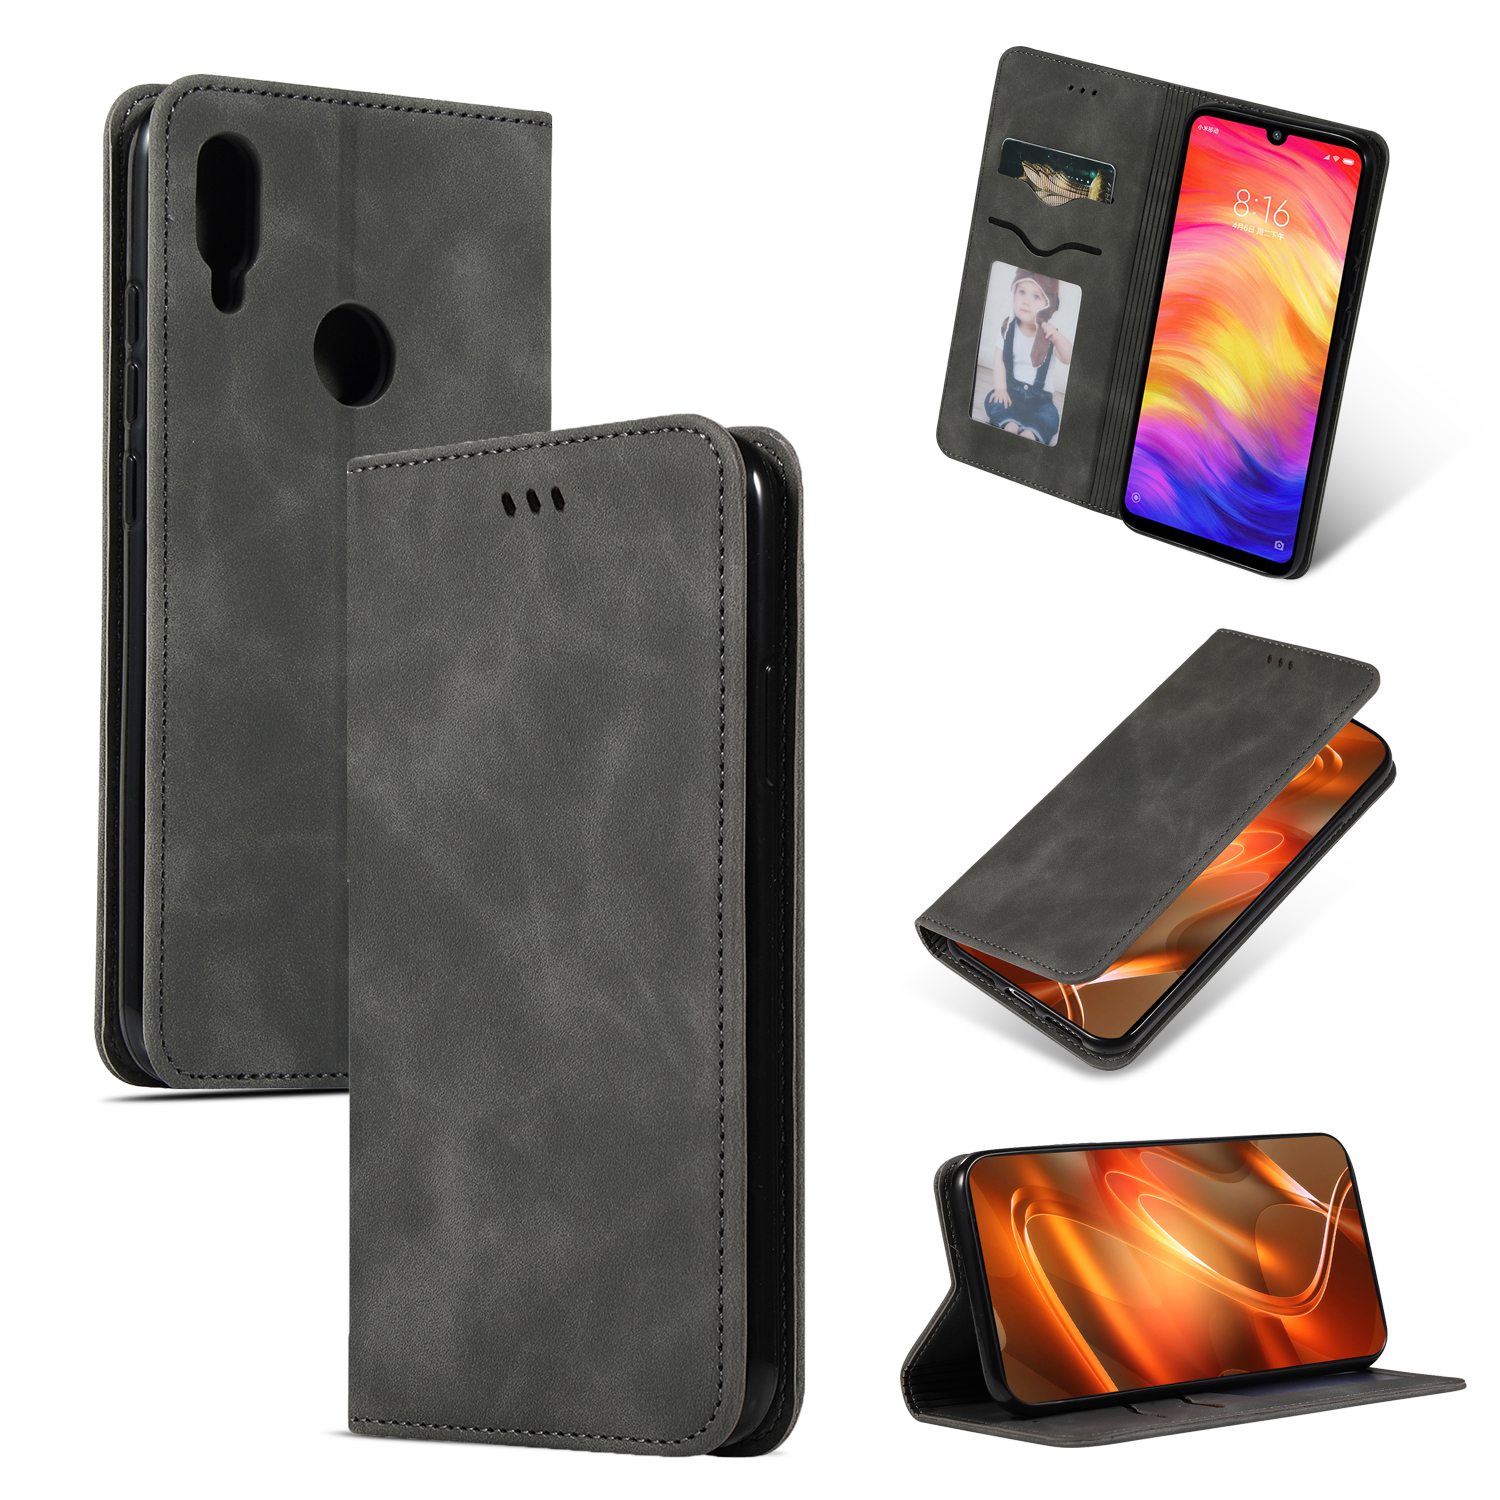 Bakeey Flip Shockproof Card Slot With Magnetic PU Leather Full Body Protective Case For Xiaomi Redmi Note 7 / Redmi Note 7 Pro